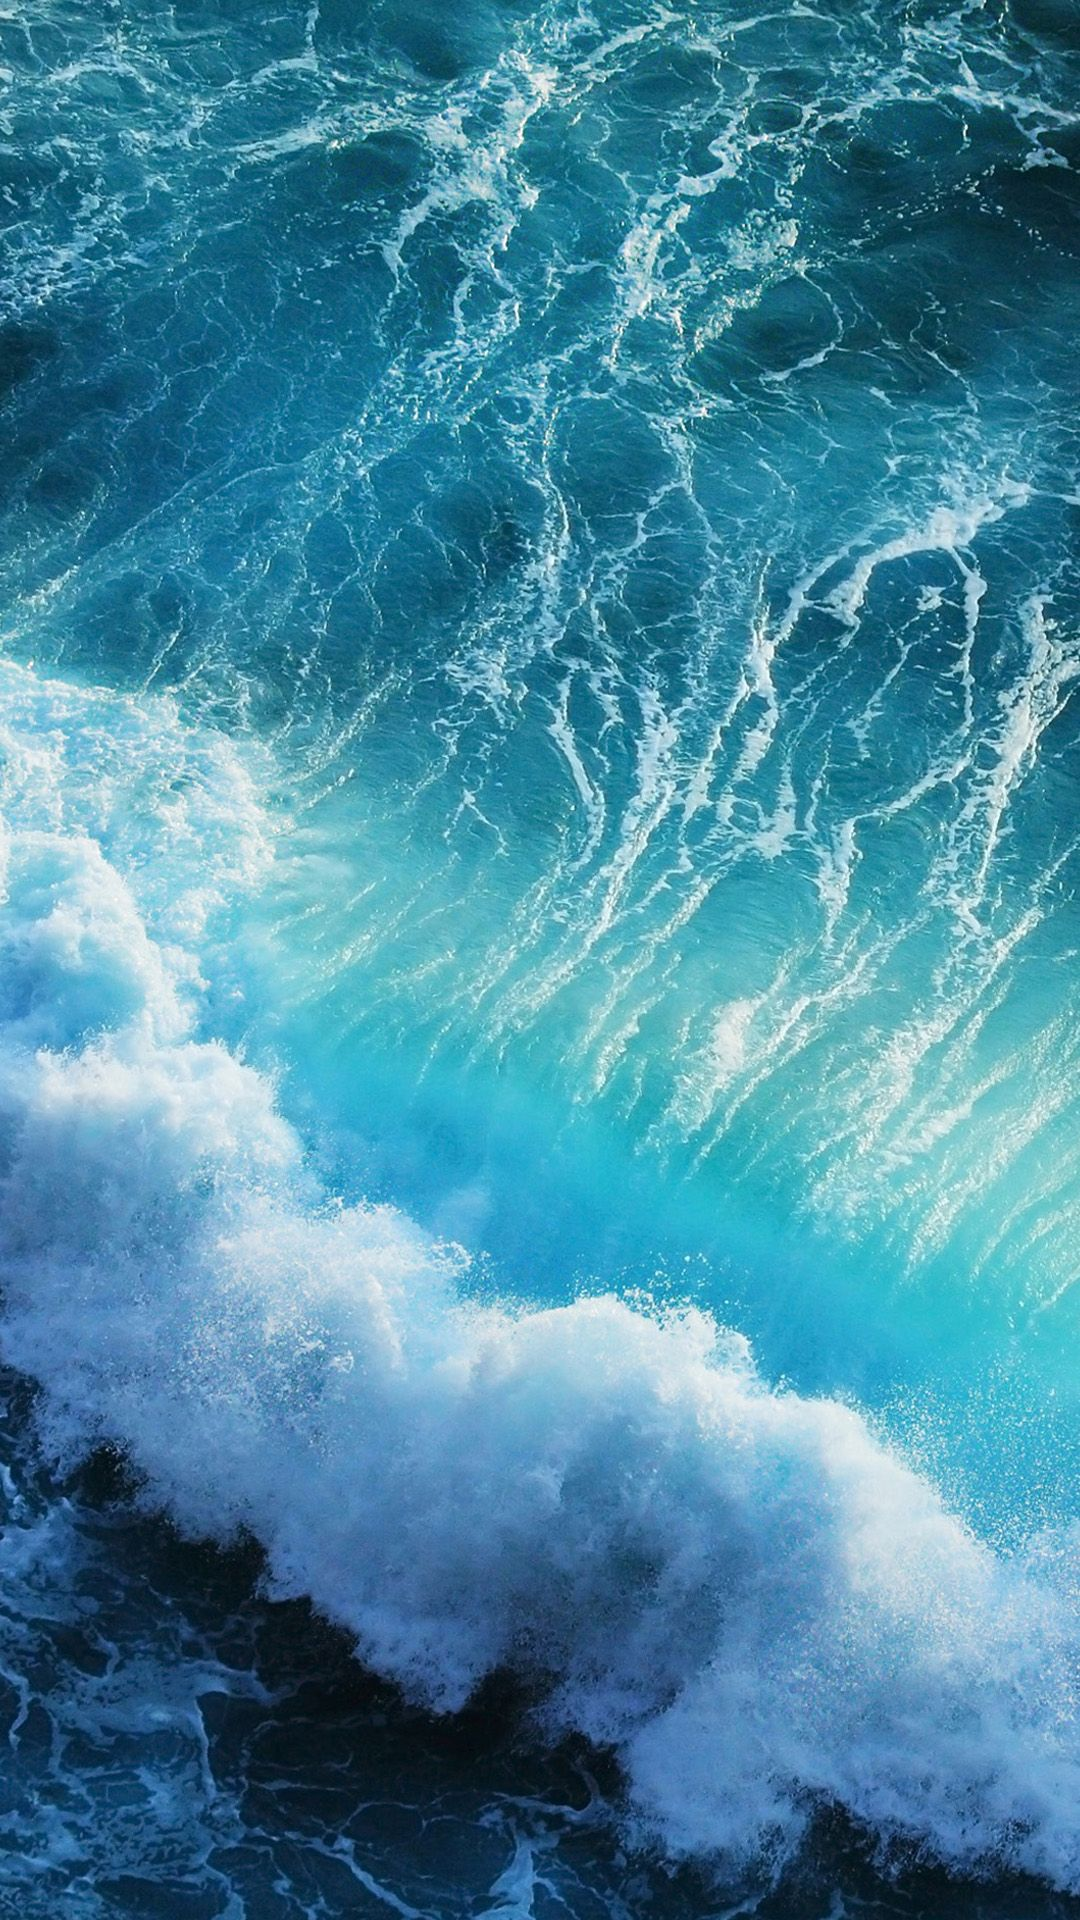 Blue sea water wallpapers for iphone 6 plus | Watery ...